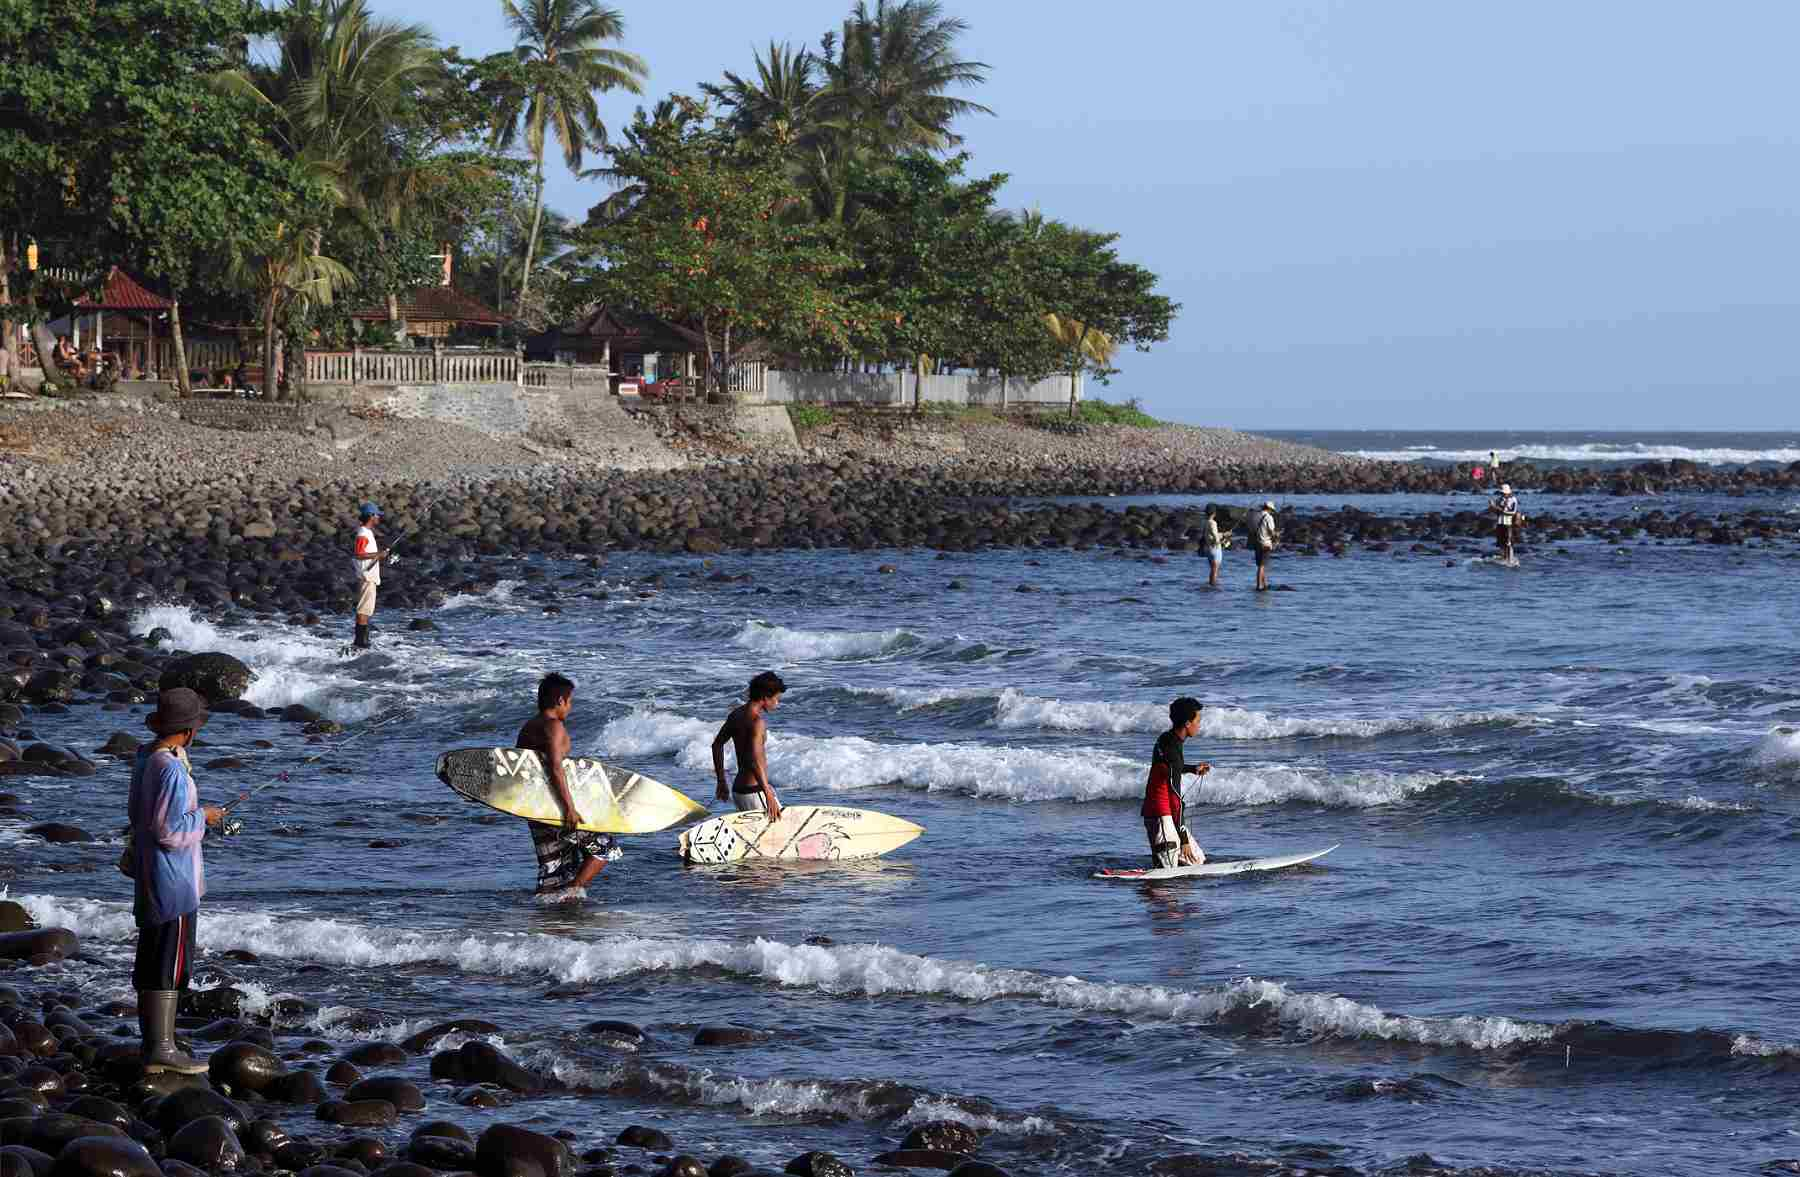 Local surfers head out to catch Medewi Beach's waves.